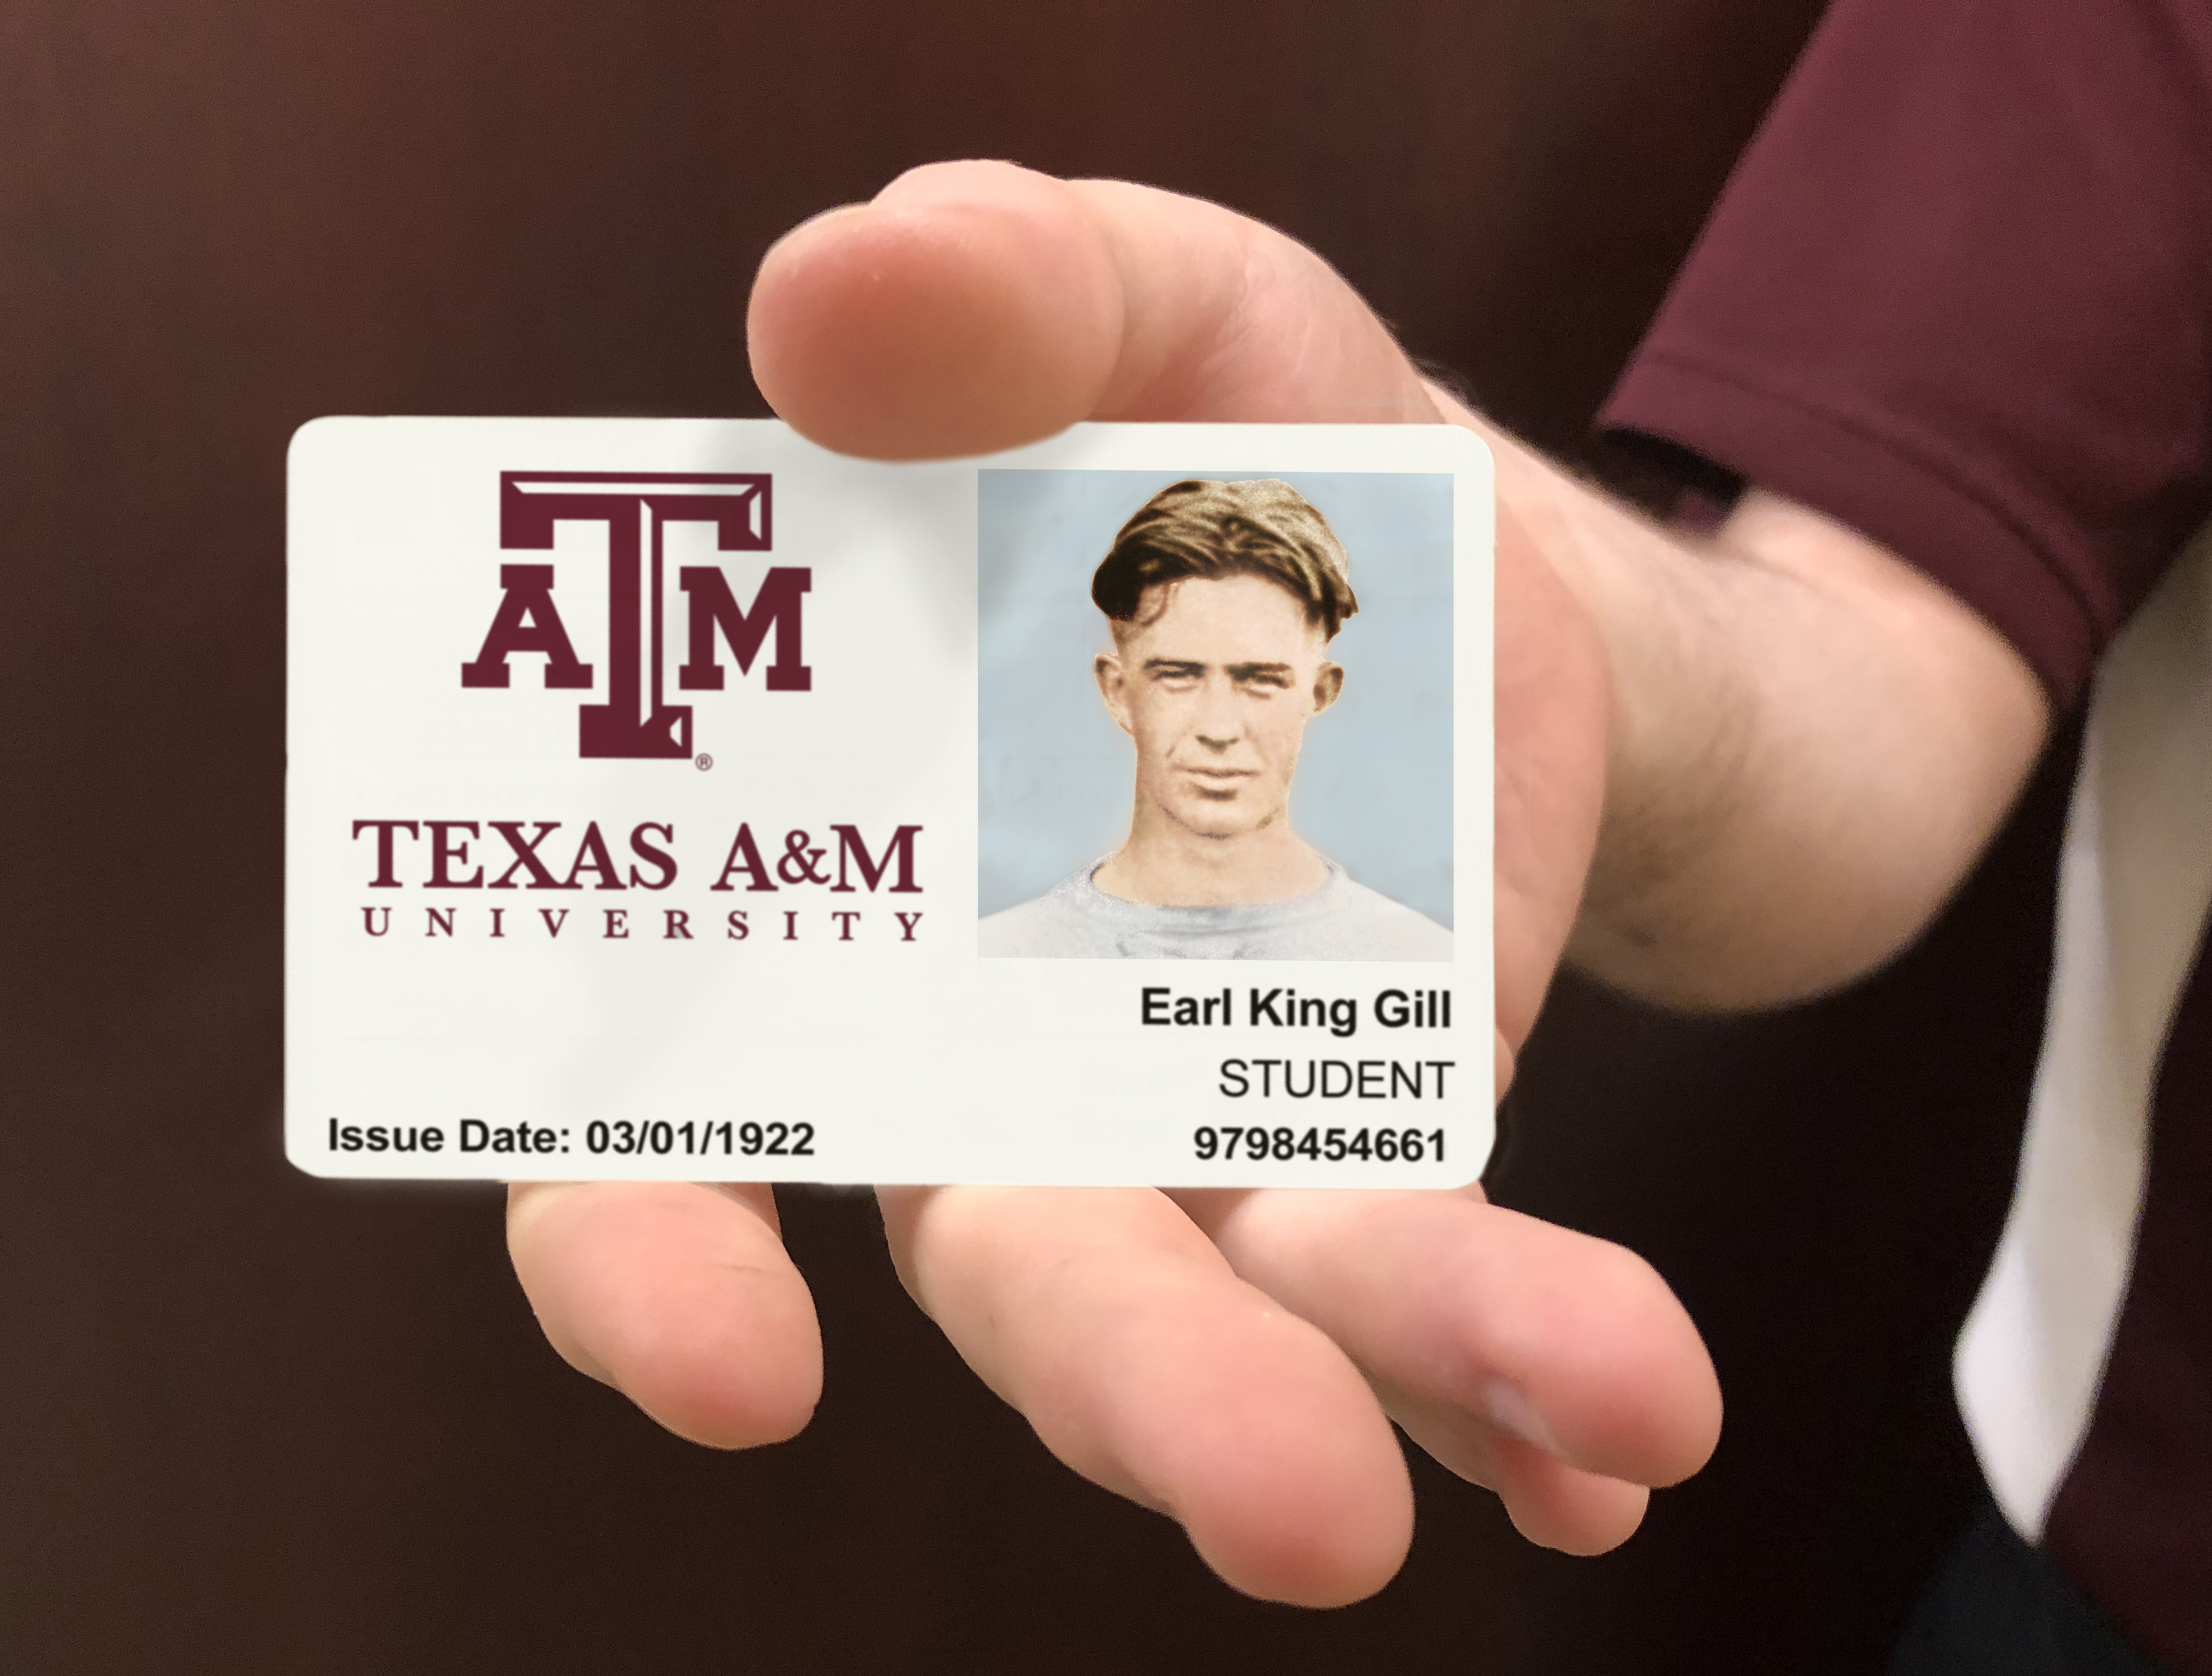 Welcoming Texas A&M's Class of '22!